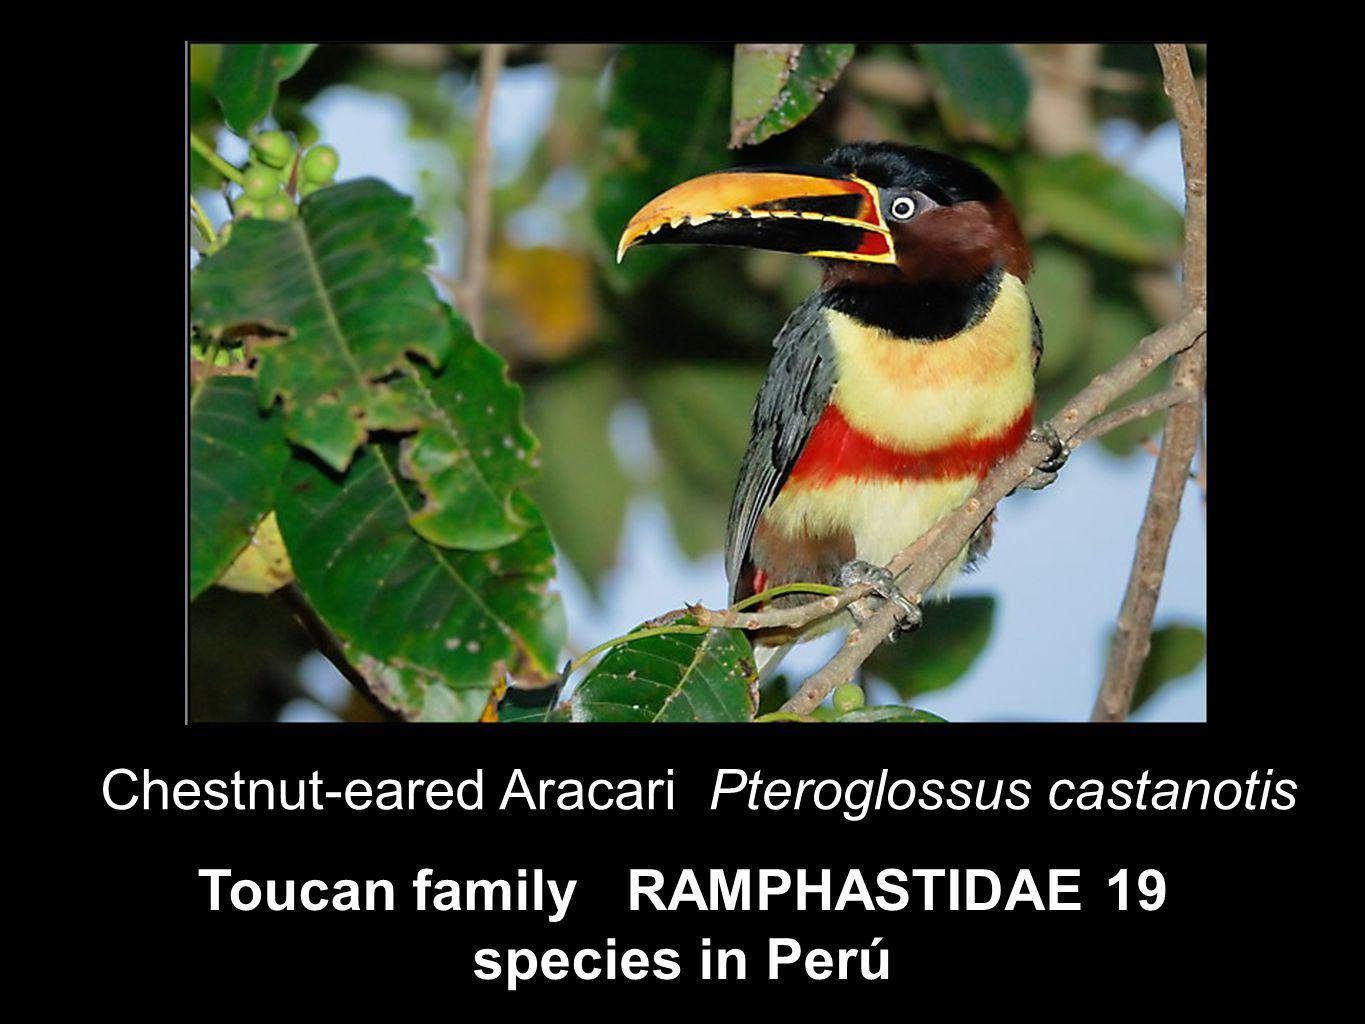 Toucan family RAMPHASTIDAE 19 species in Perú Chestnut-eared Aracari Pteroglossus castanotis